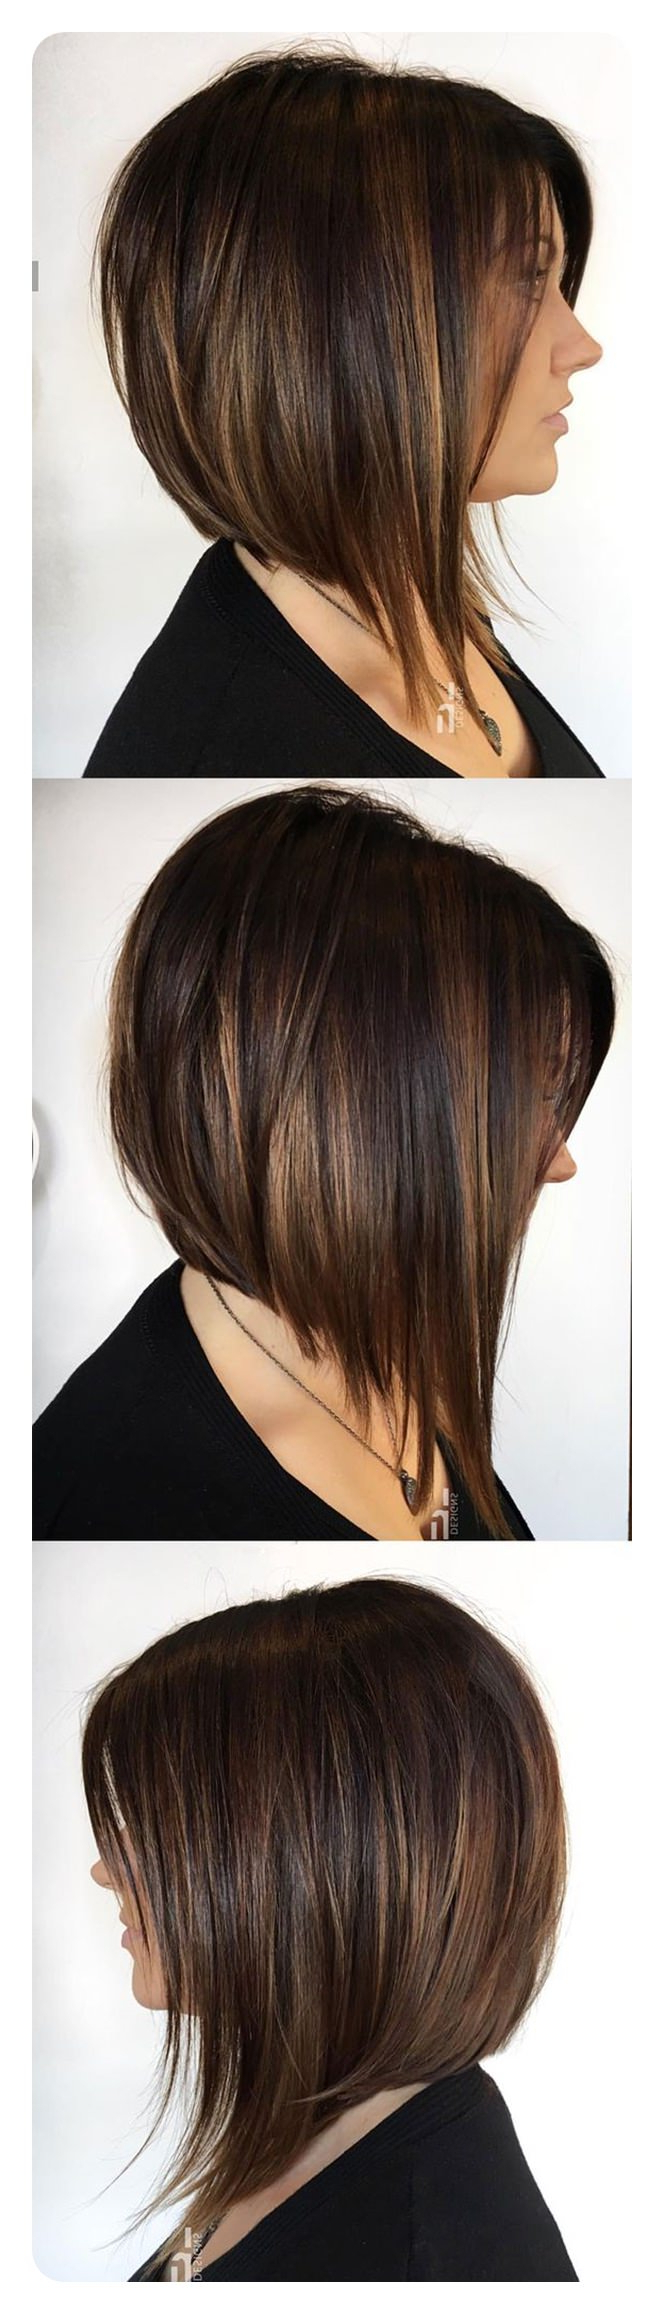 92 Layered Inverted Bob Hairstyles That You Should Try For Well Known Graduated Angled Bob Hairstyles (View 5 of 20)